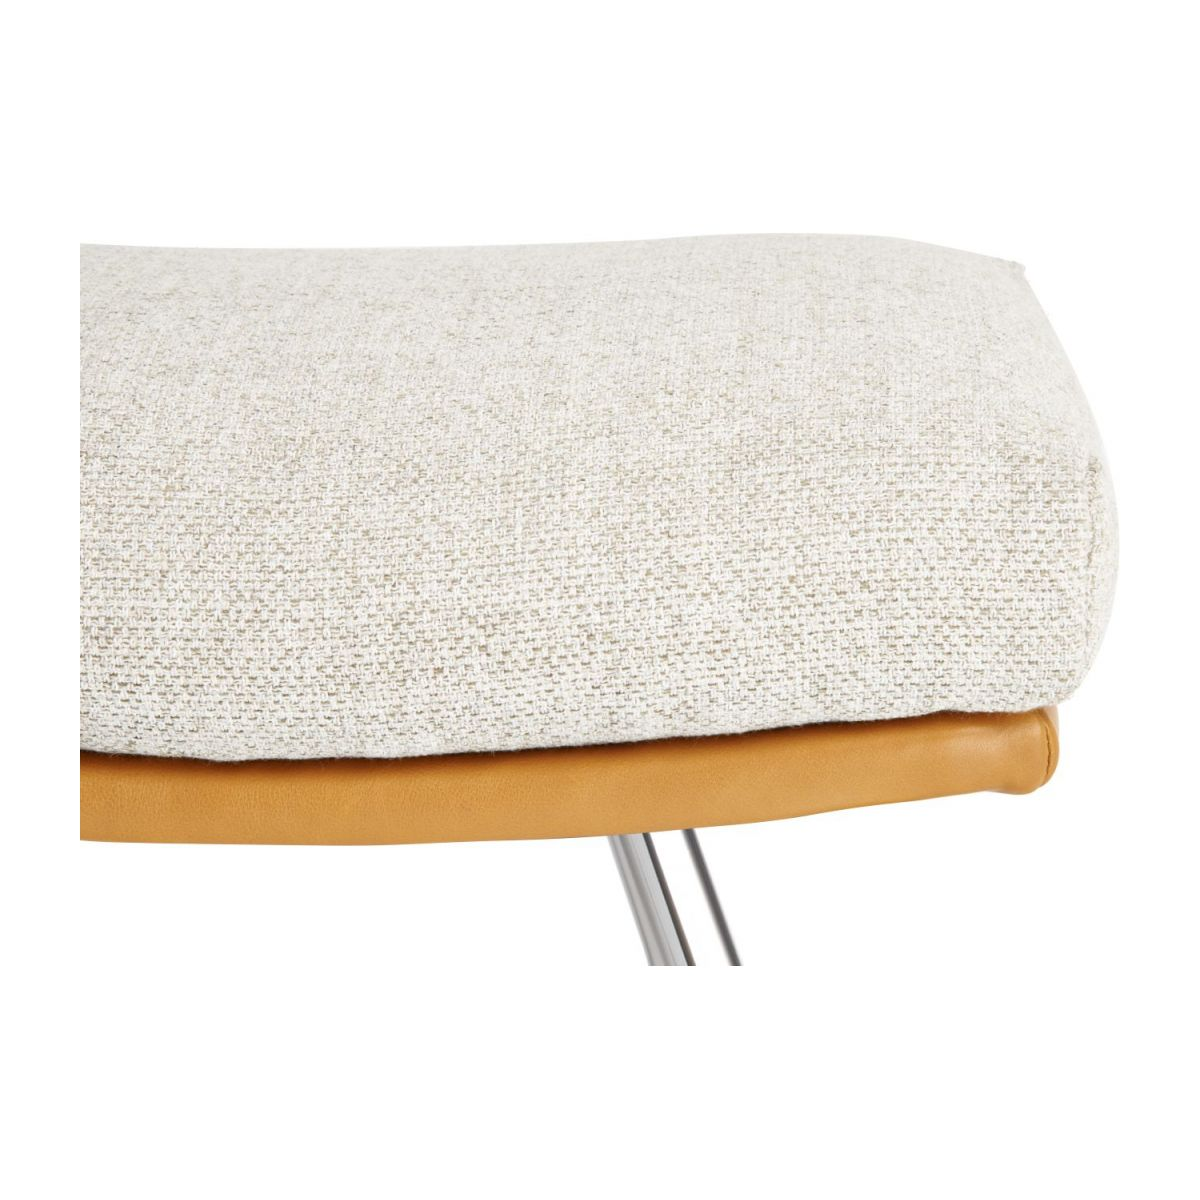 Footstool in Ancio fabric, nature et cuir marron with chromed metal legs n°4